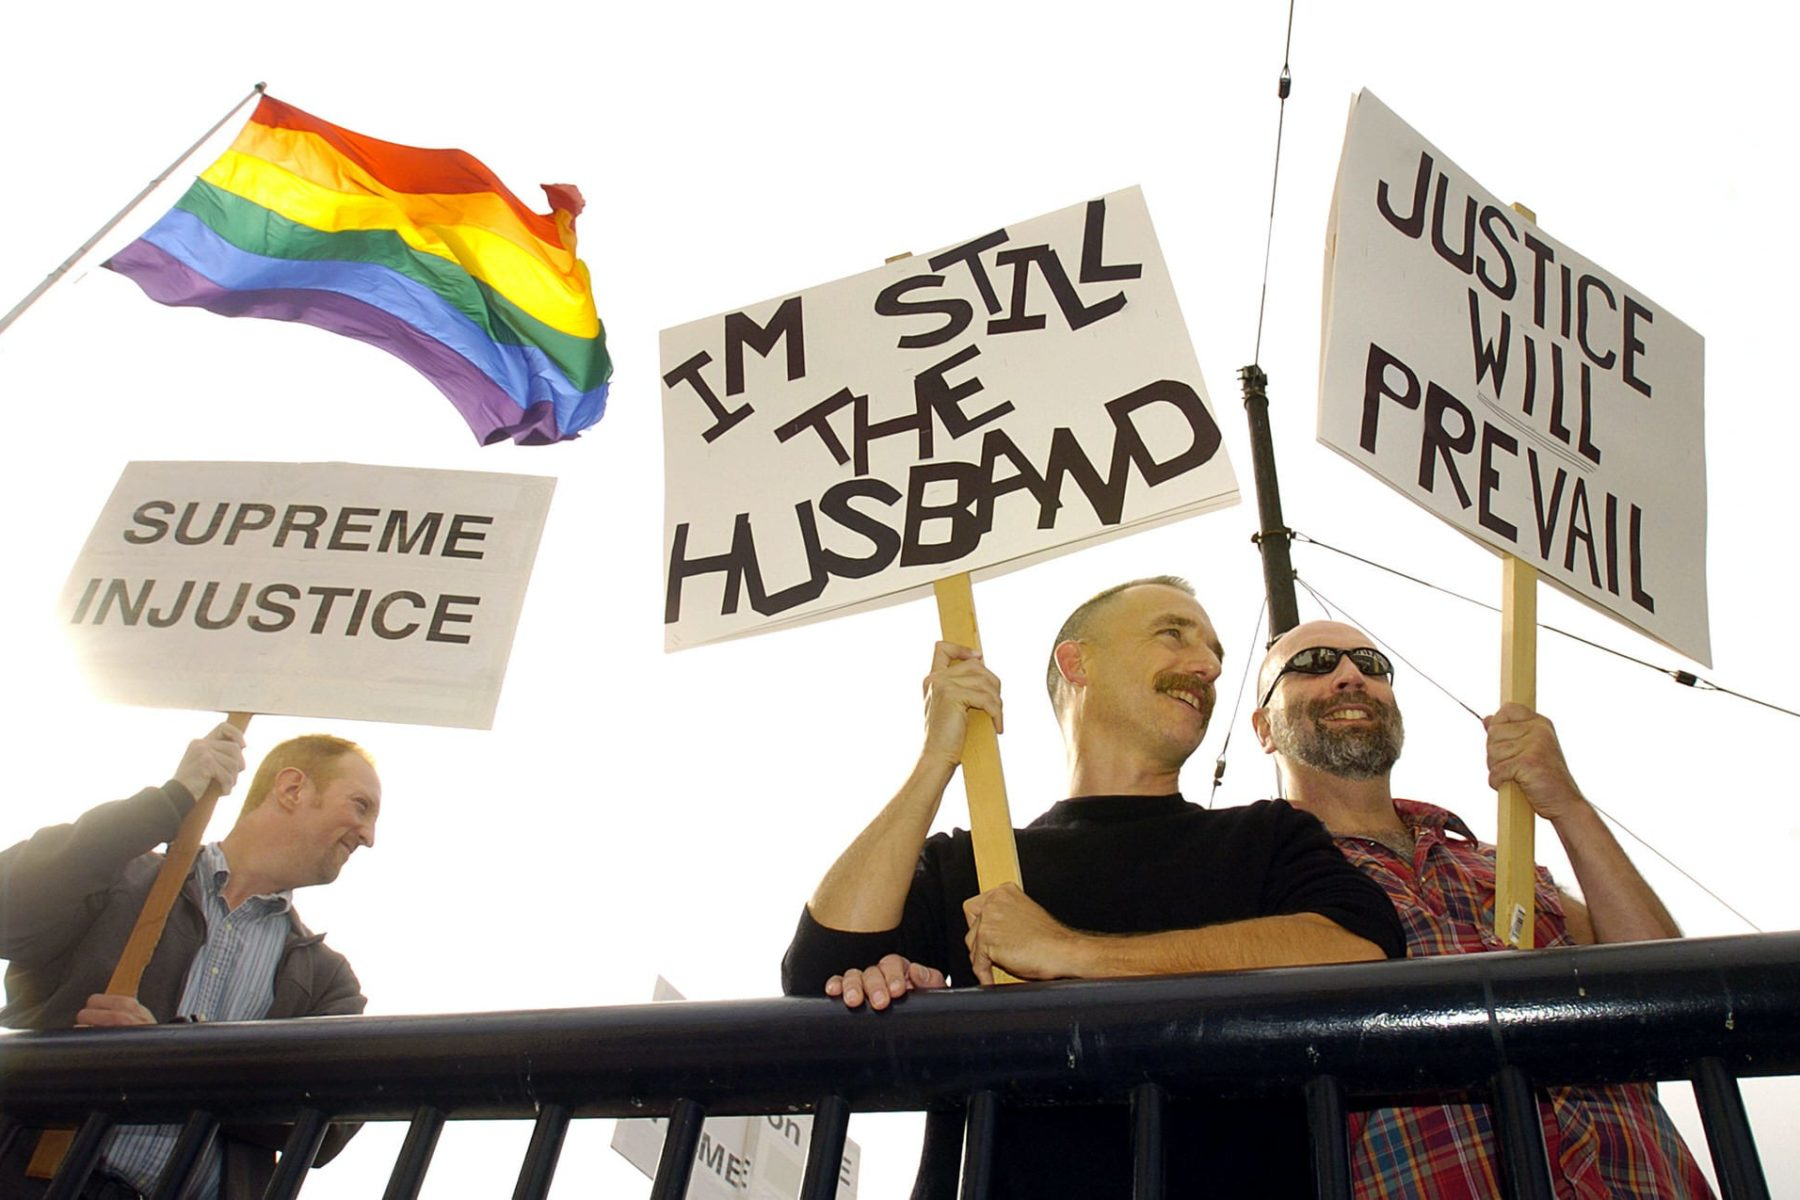 Three people stand with signs supporting marriage equality as the LGBTQ flag waves in the background.